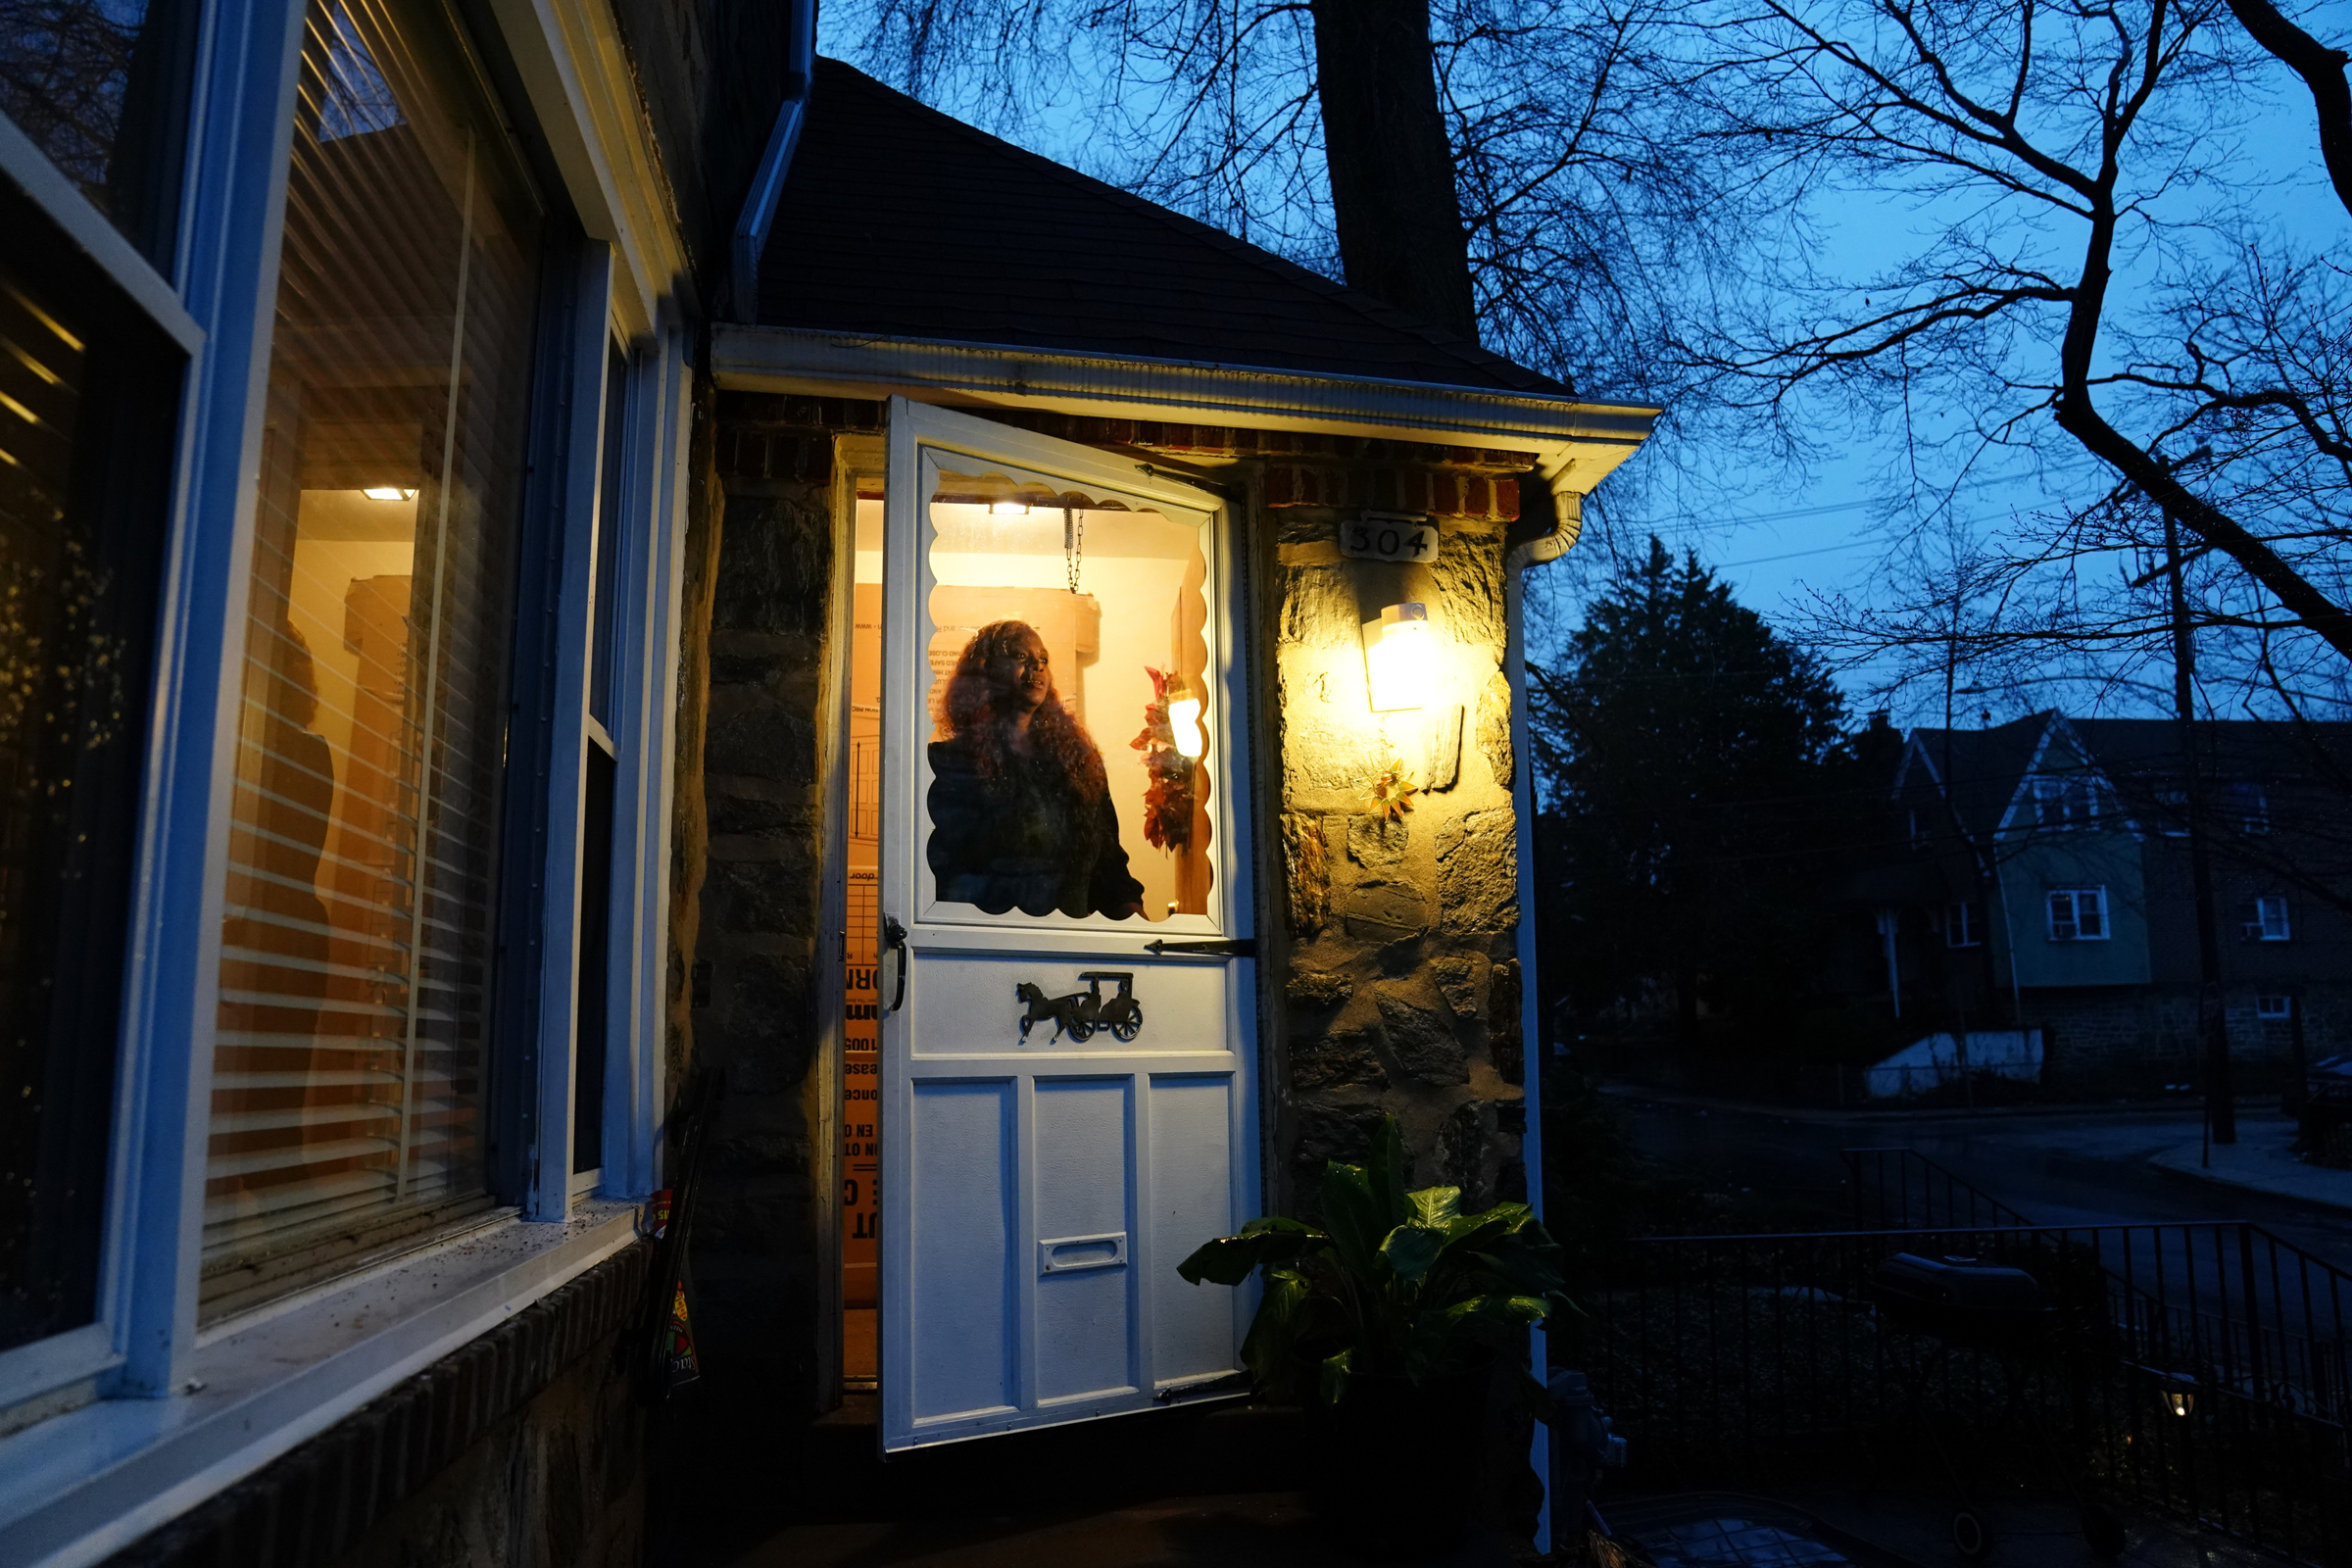 Morkea Spellman, in the doorway of her home in Philadelphia, said that detectives eager to close the case and lock up her daughter failed to look at all the evidence.